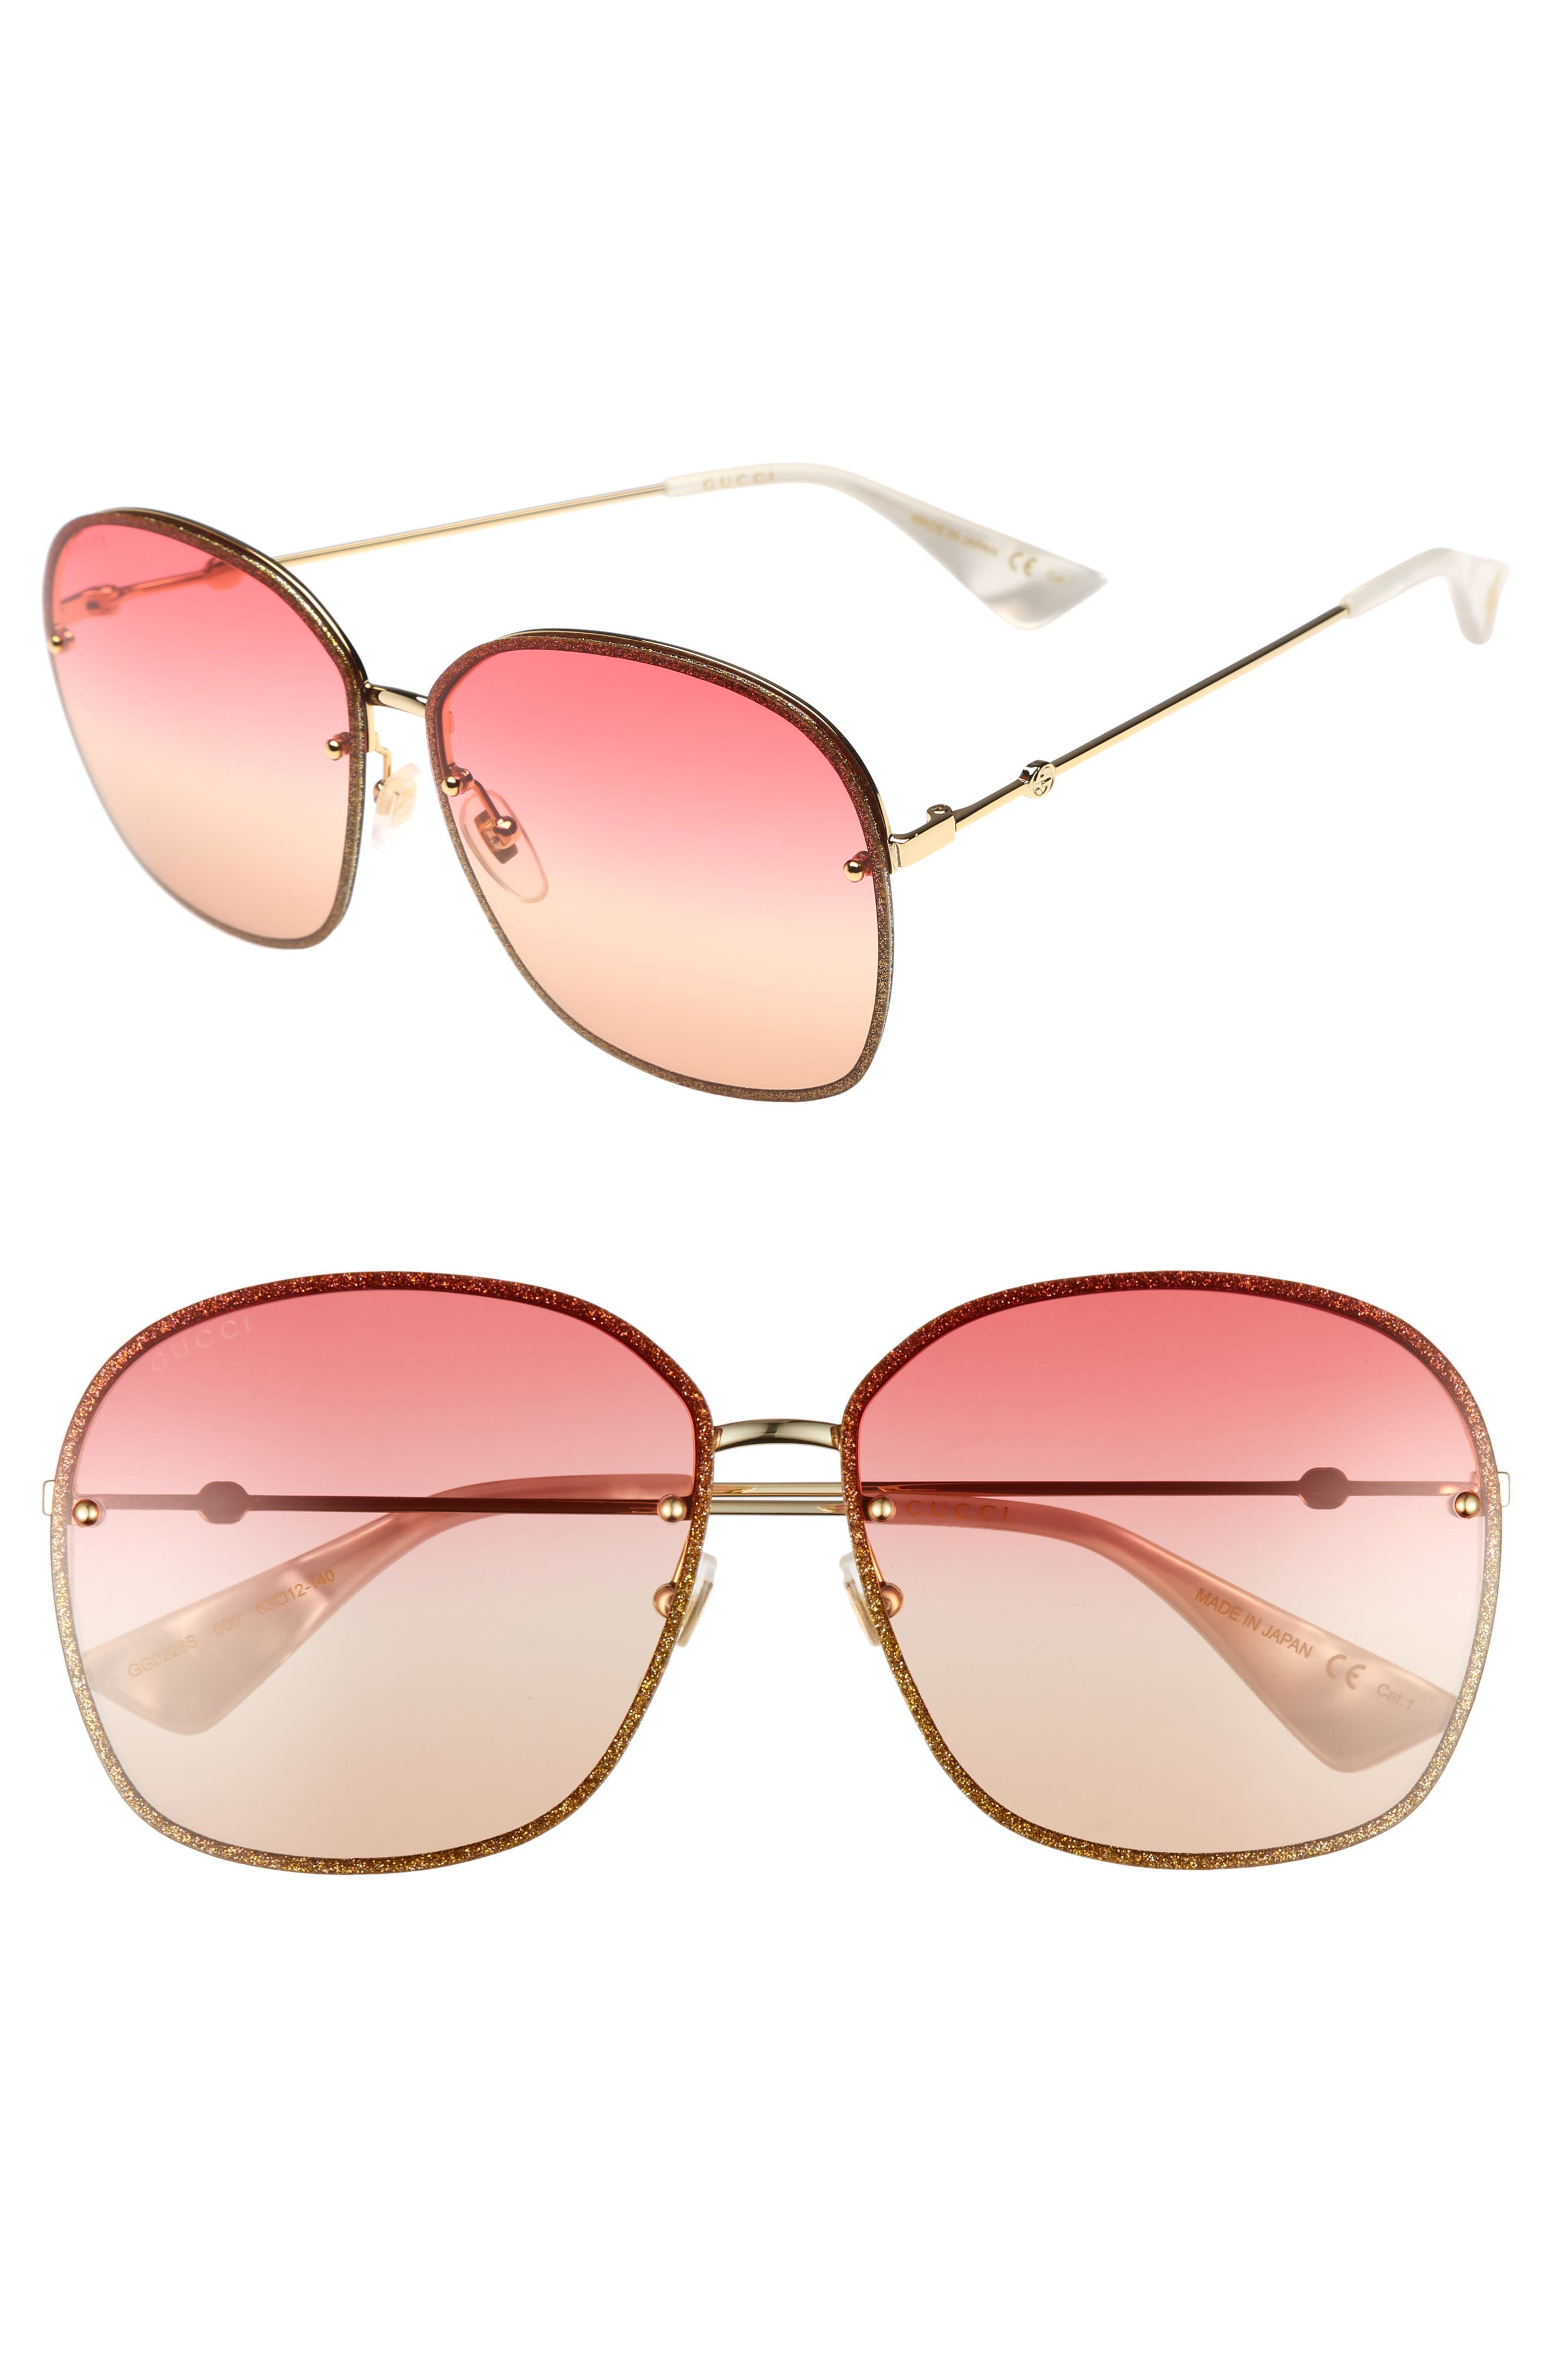 Alternate Image 1 Selected - Gucci 63mm Oversize Square Sunglasses